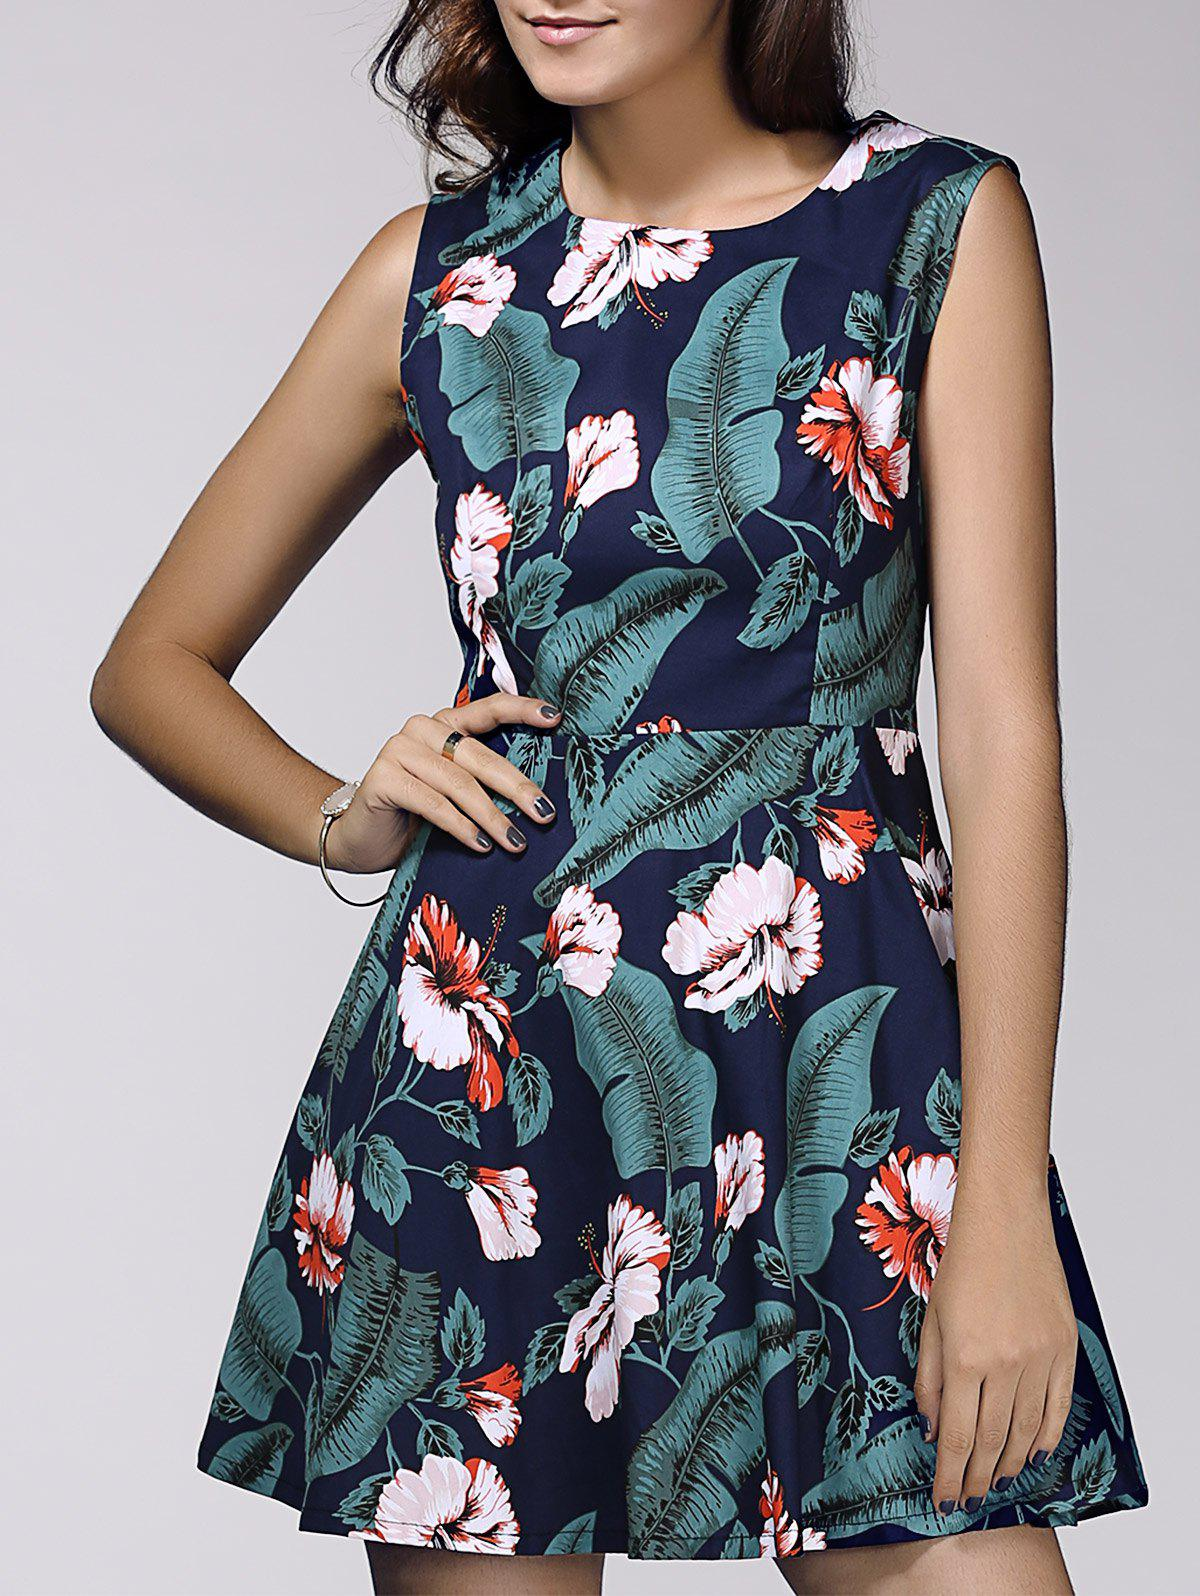 Vintage Style Women's Scoop Neck Sleeveless Floral and Leaf Print Dress - ONE SIZE(FIT SIZE XS TO M) GREEN